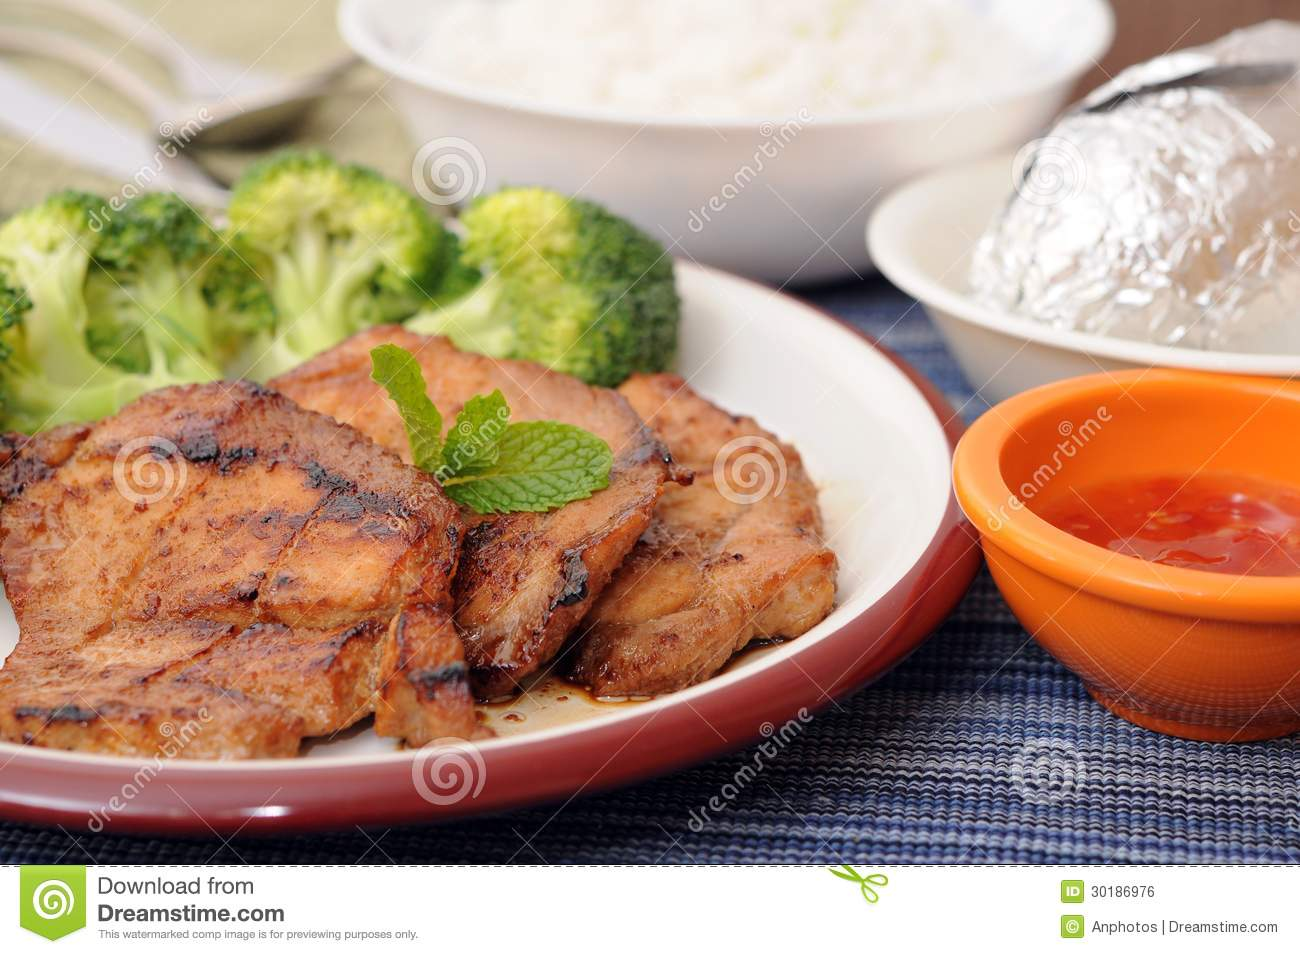 Grilled Pork, Broccoli, Steamed Rice And Potato Royalty Free Stock ...